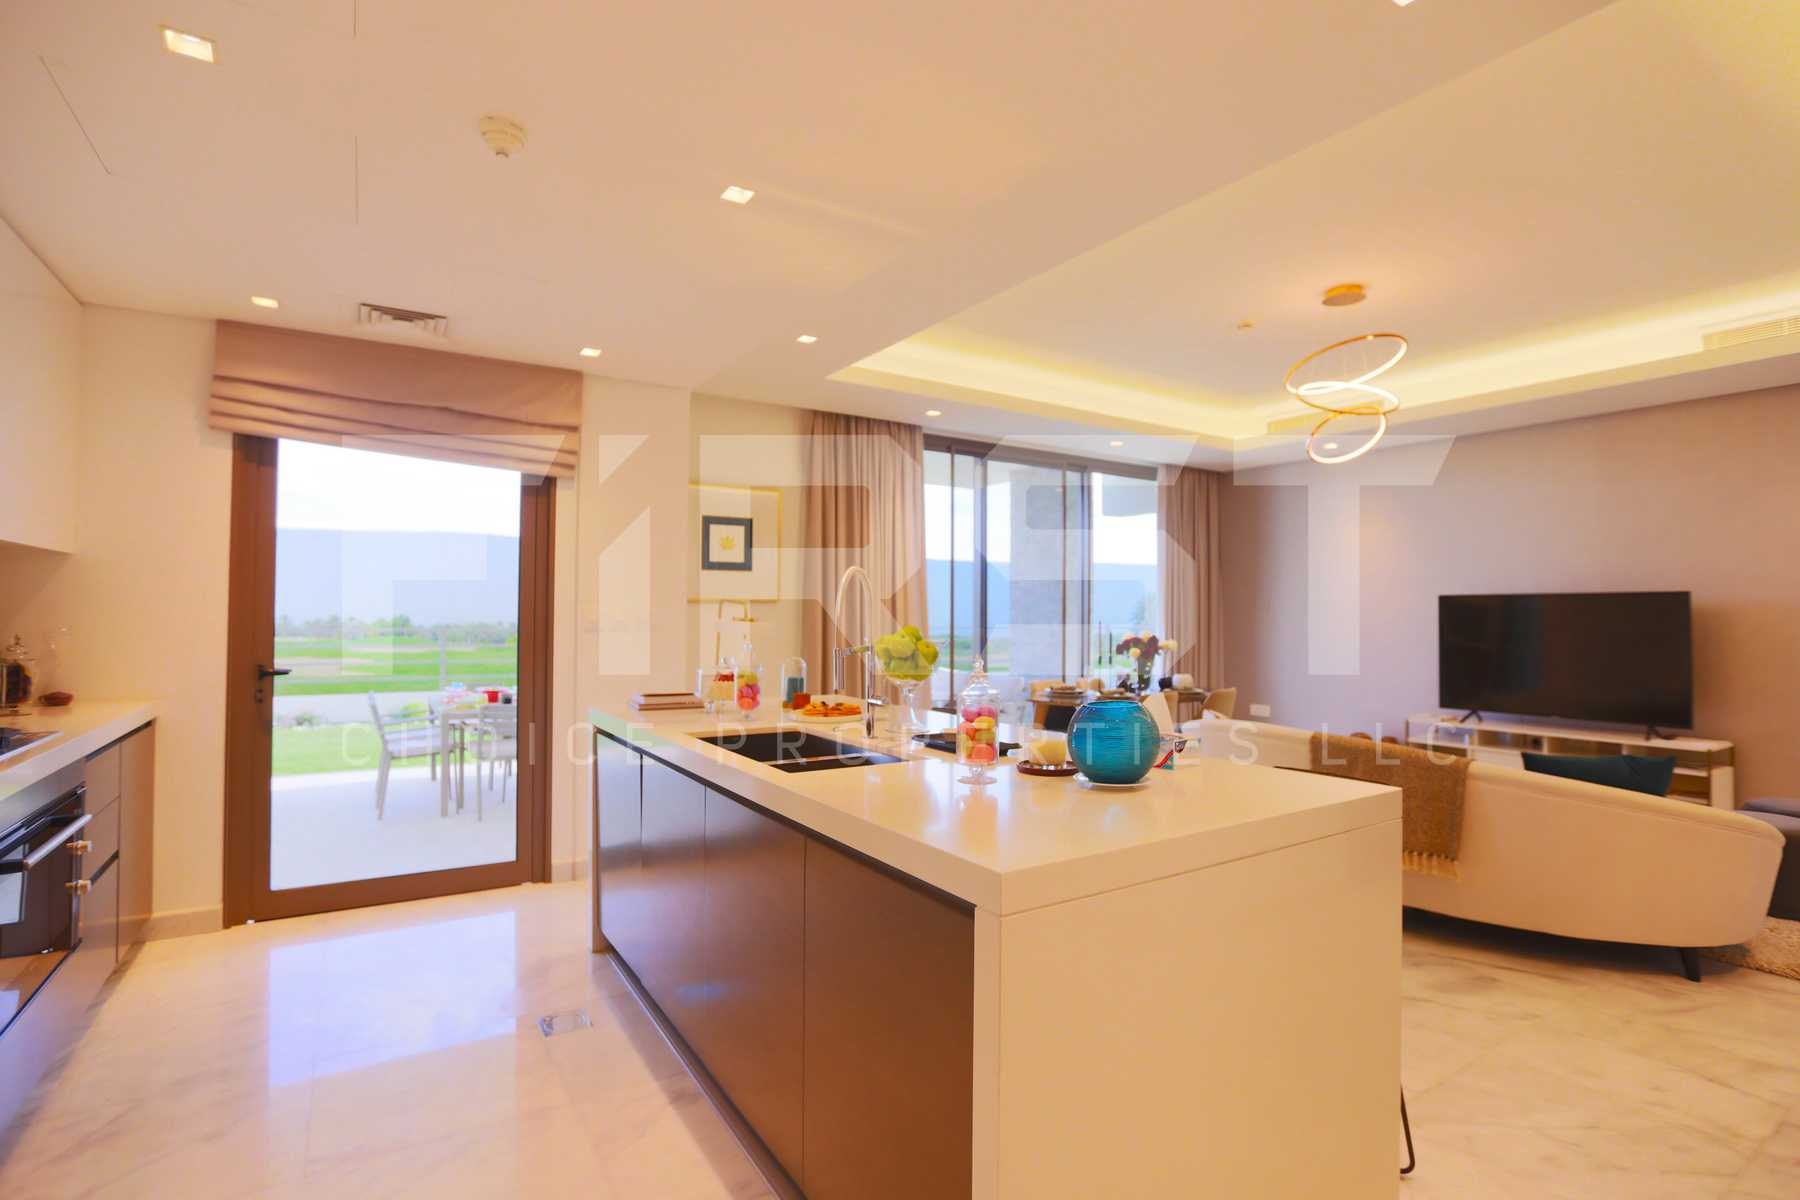 F. Internal Photo of 4 Bedroom Villa Type 4F in Yas Acres Yas Island Abu Dhabi UAE (19).jpg